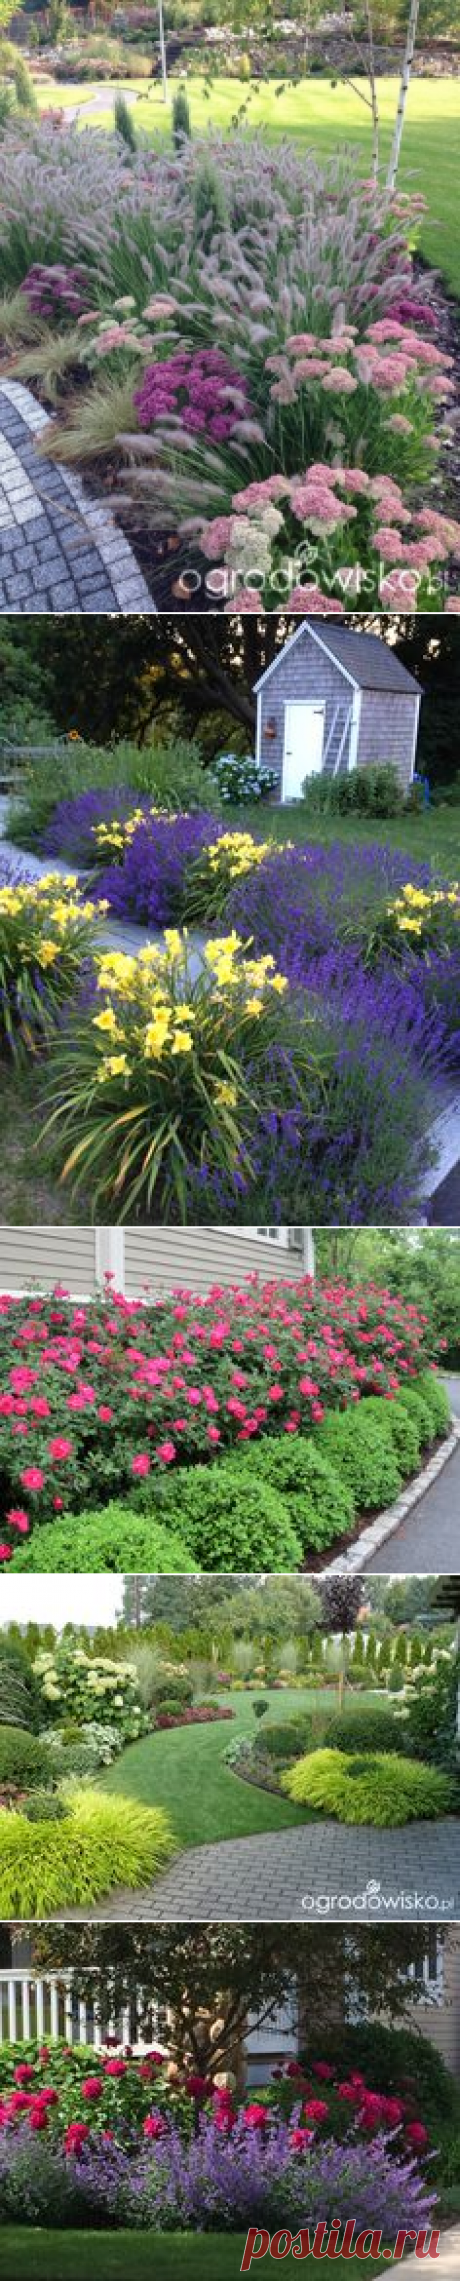 (41) Fabulous mix of ornamental grasses and other perennials. | Great Garden Ideas